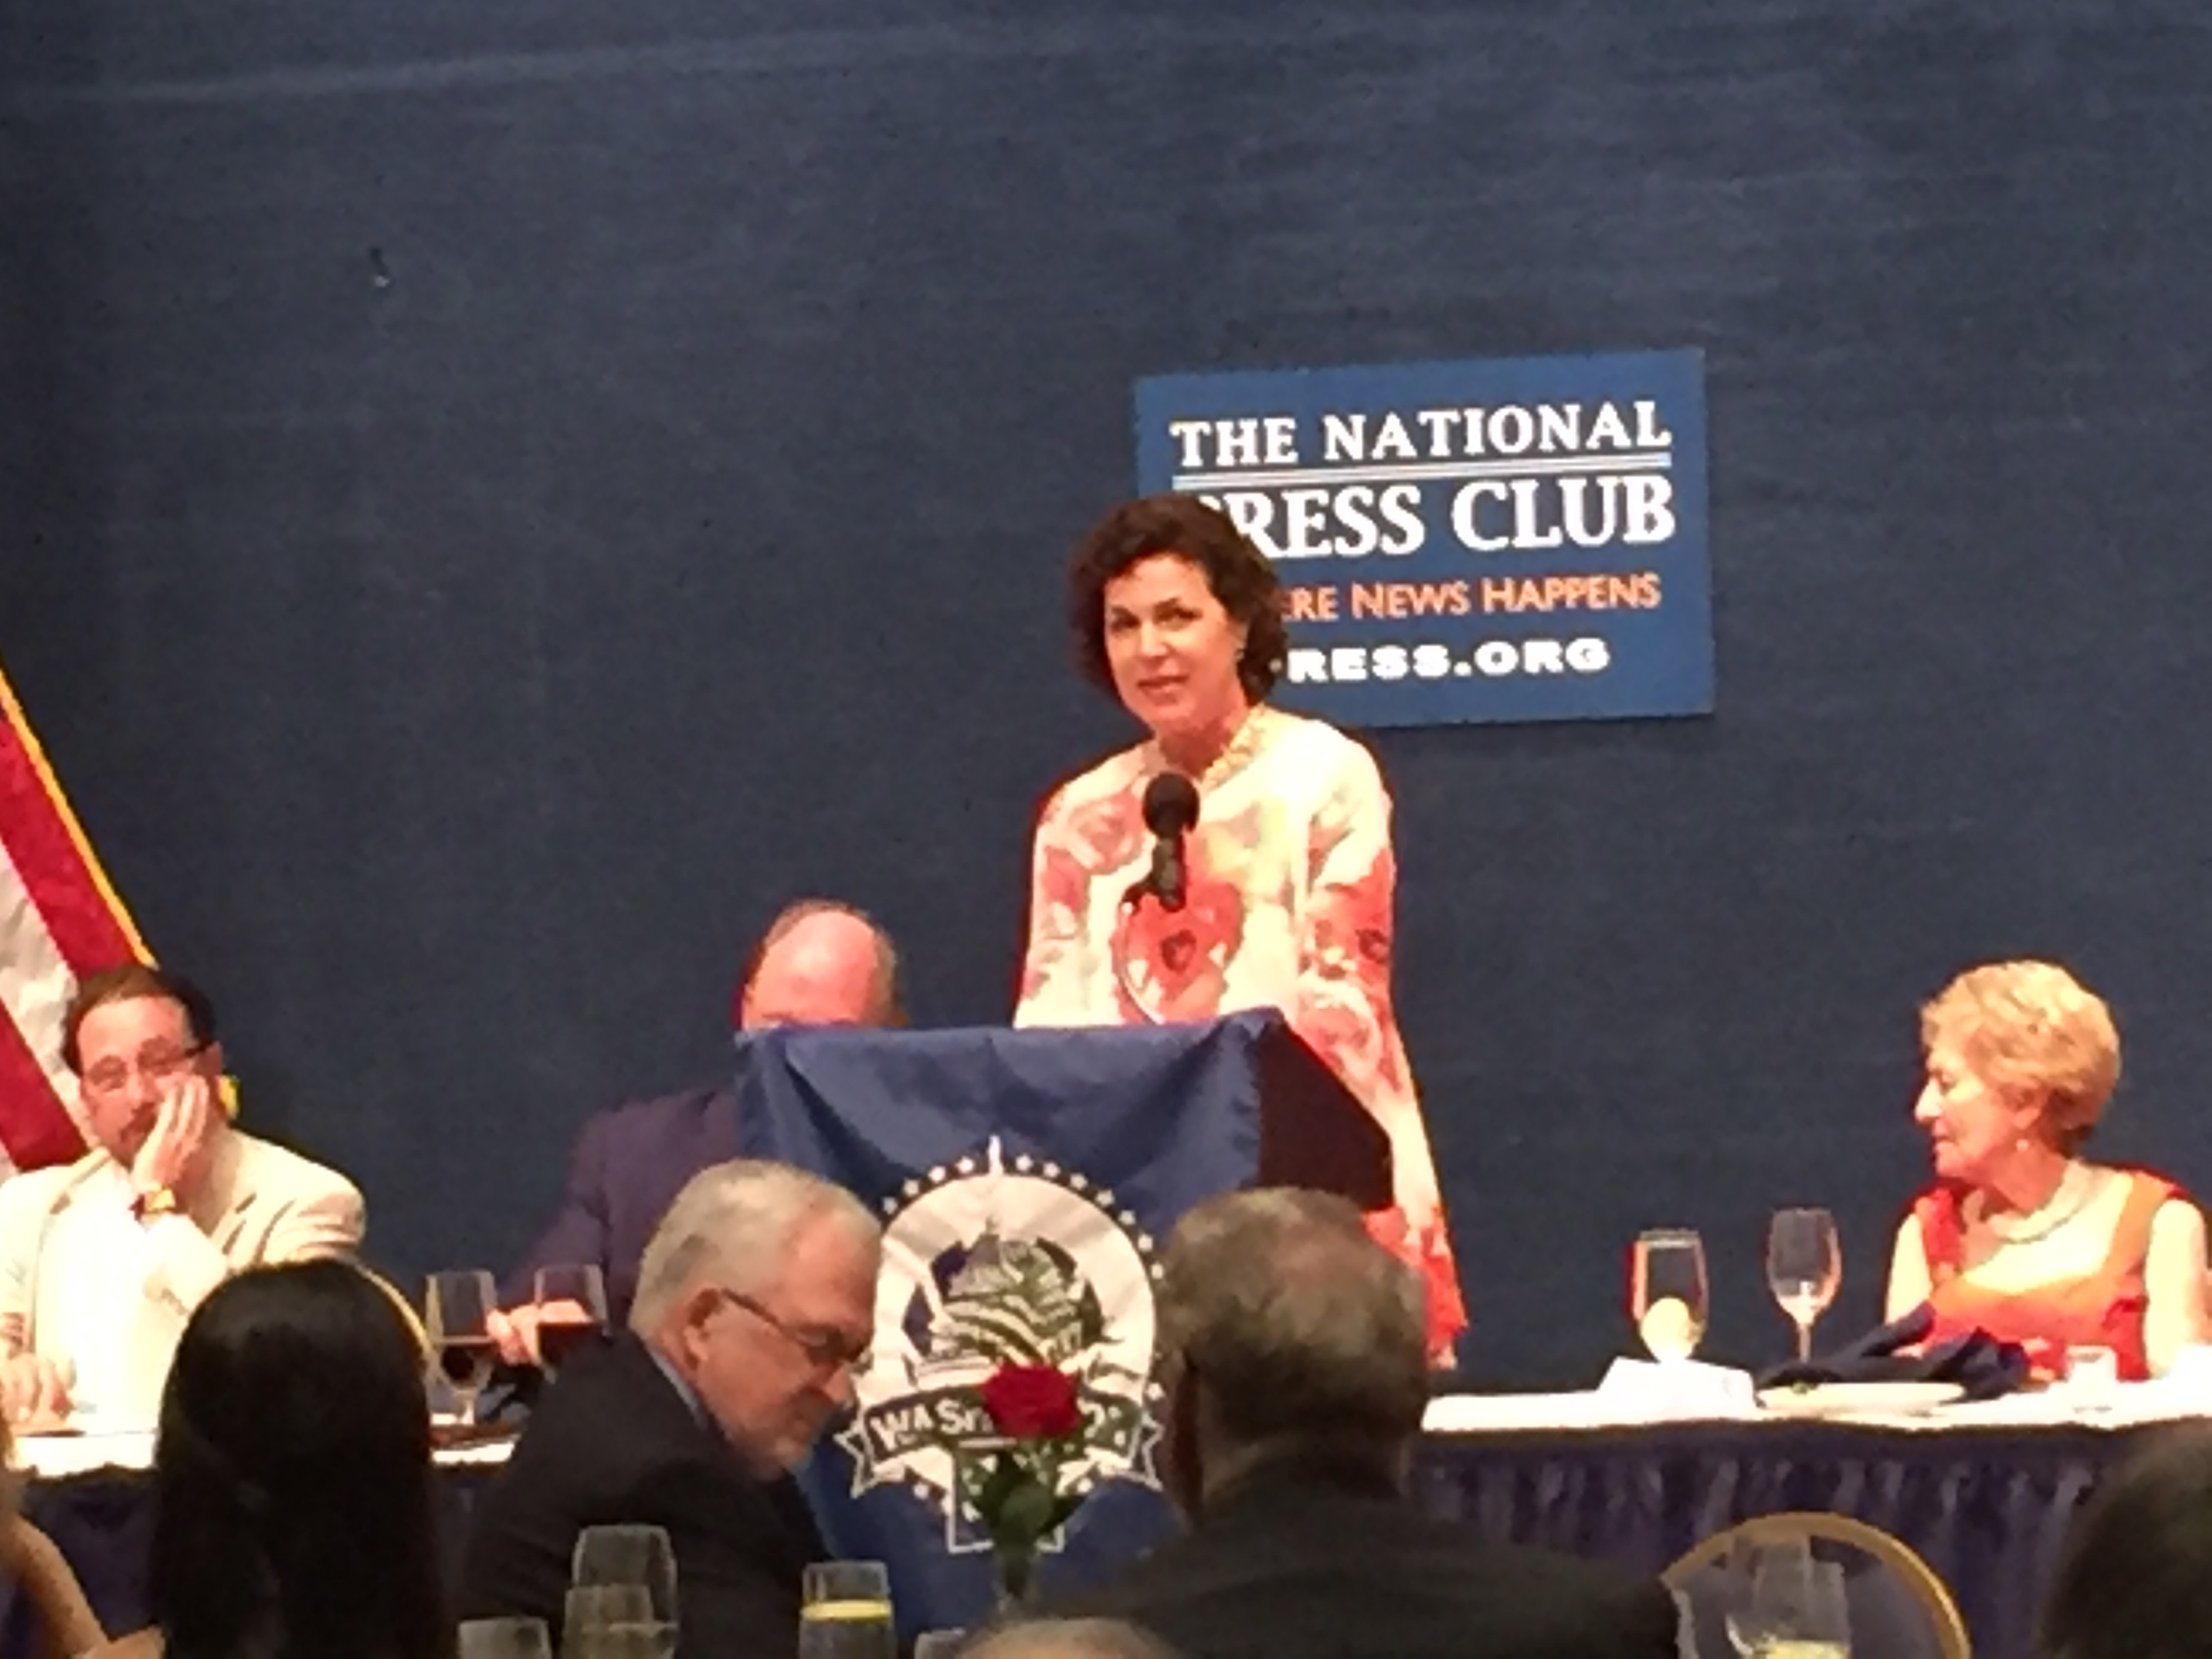 2017 Hall of Fame inductee Alexis Simendinger speaks at Dateline Awards/Hall of Fame dinner. Simendinger is White House correspondent for RealClearPolitics.com.